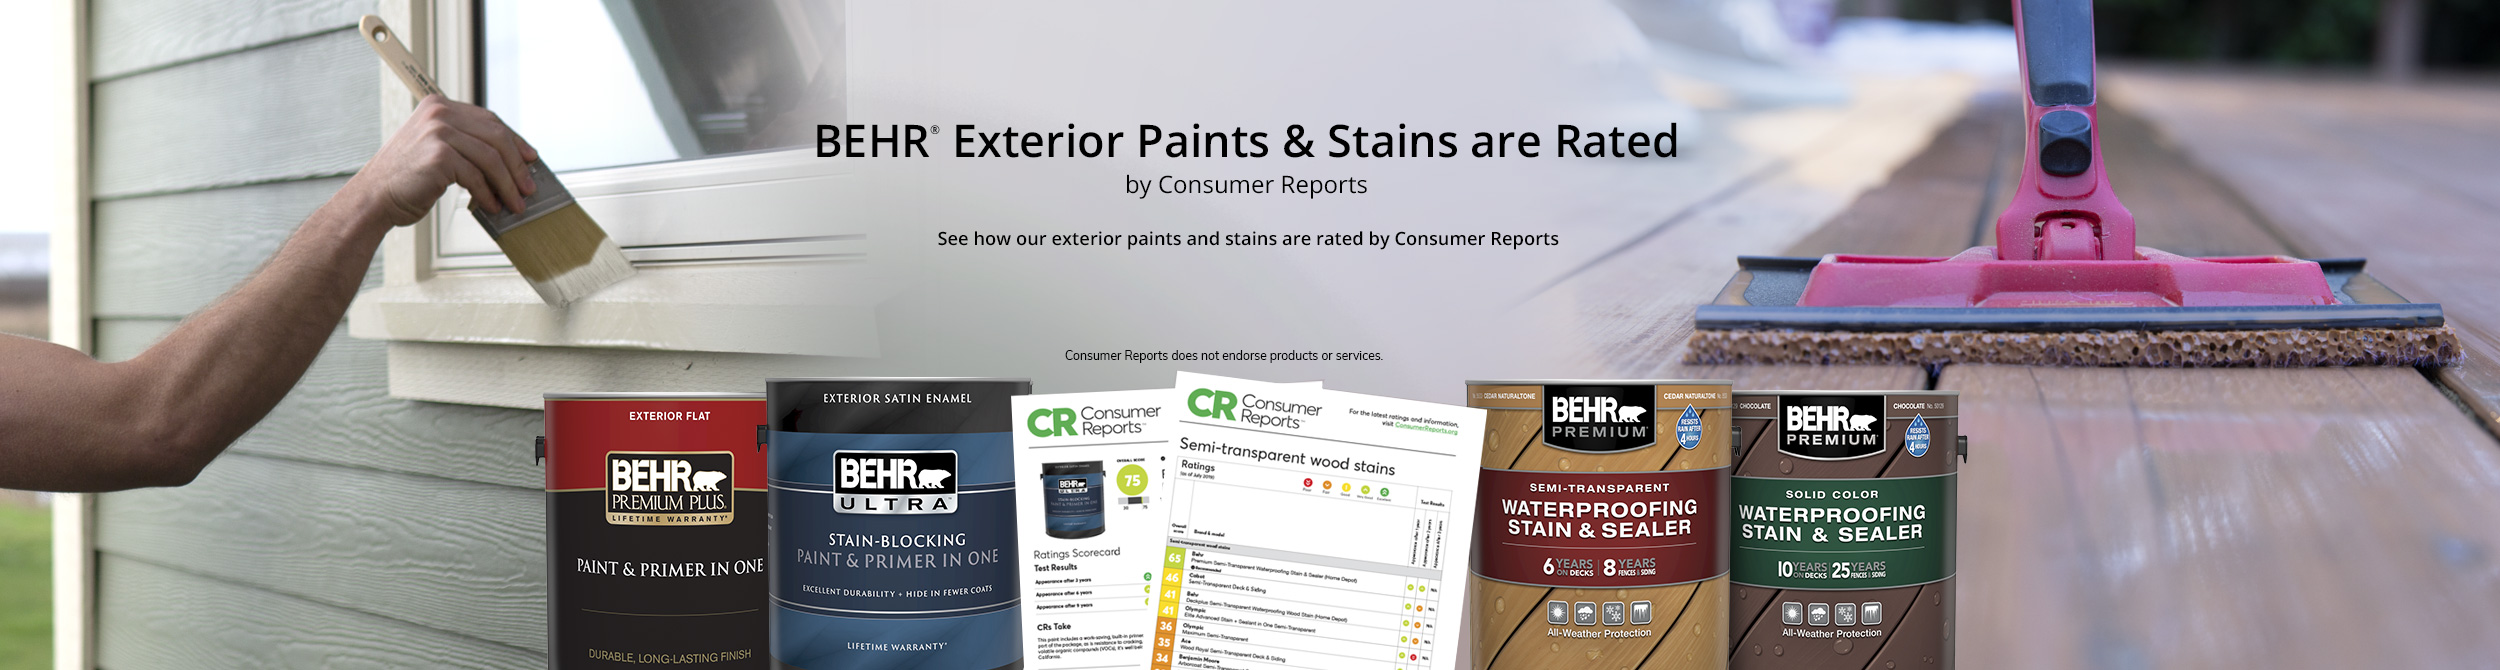 Montage image of house siding and deck, with 1 gal cans of Premium Plus Exterior Flat paint, Ultra Exterior Satin Enamel paint, Behr Premium Semi-Transparent Waterproofing Stain, and Behr Premium Solid Color Waterproofing stain in the forefront. Two images of Consumer Reports findings are also showcased on image. See how Behr Exterior Paints and Stains are rated by Consumer Reports.